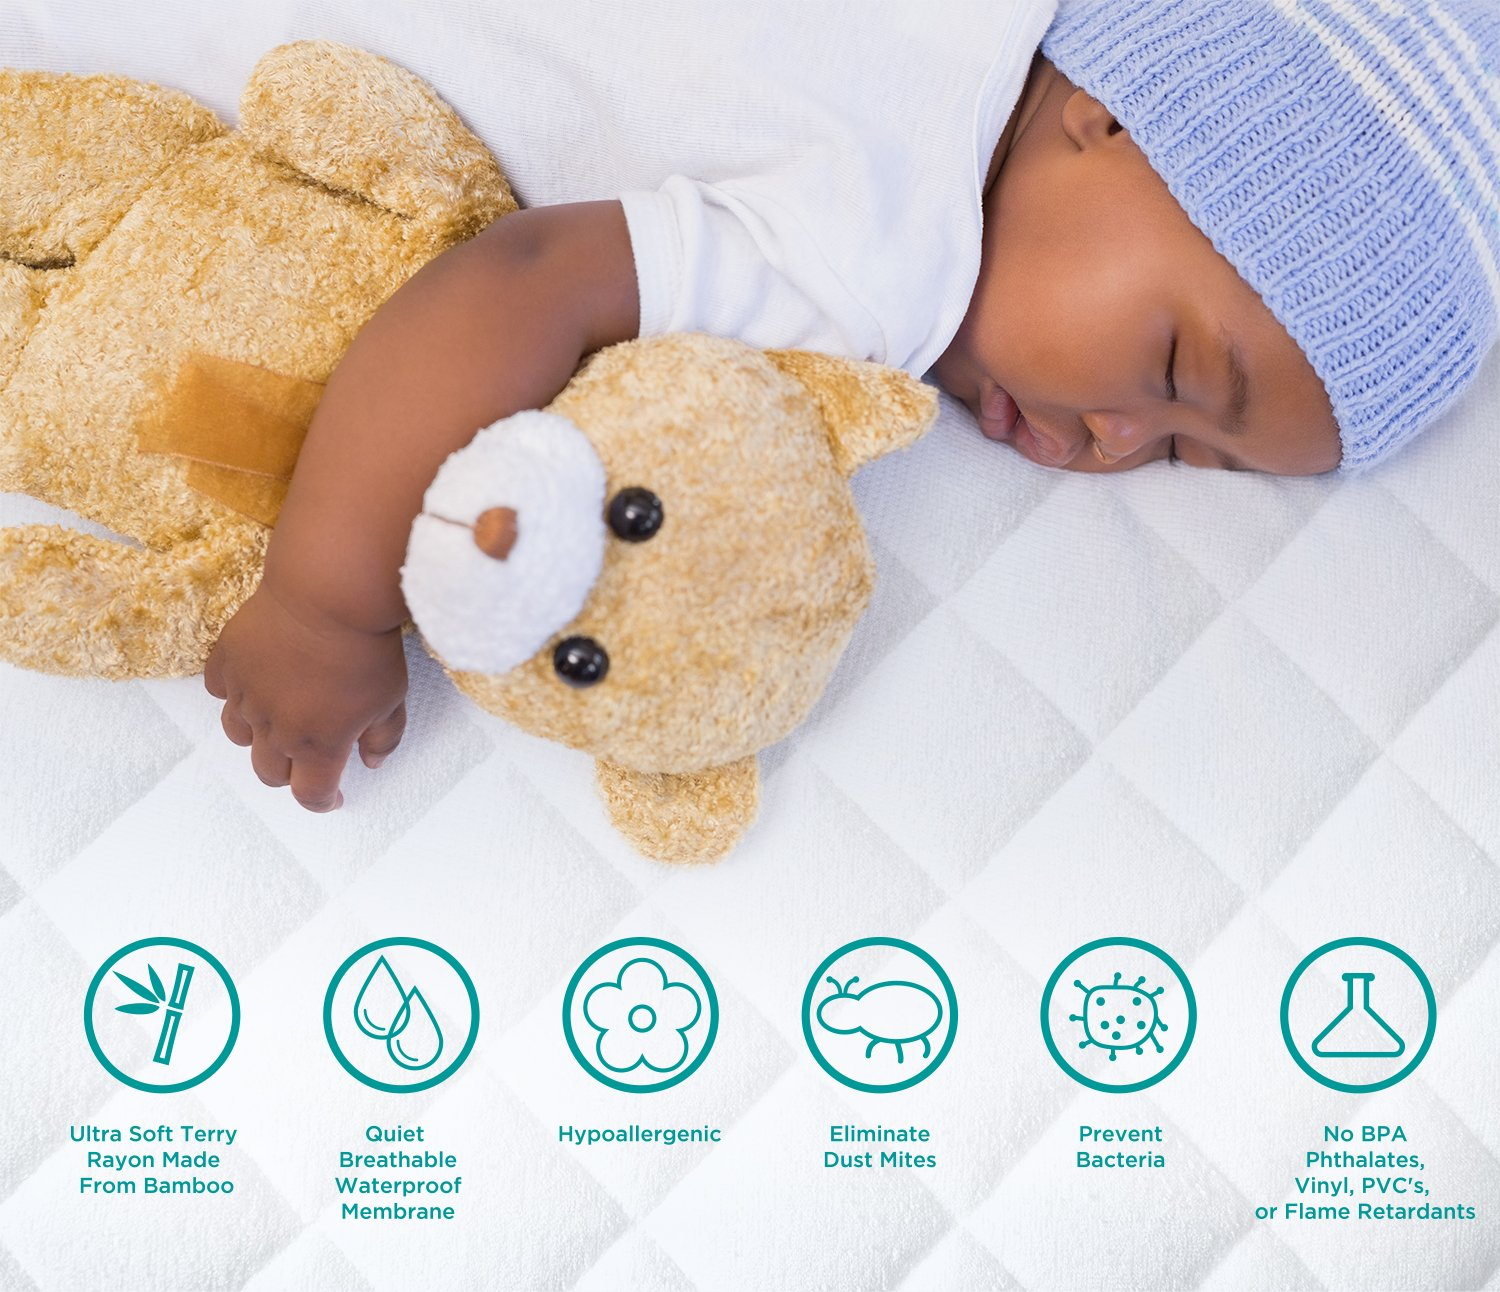 Amazon.com : Baby Crib Mattress Protector Pad - The Softest Bamboo Rayon Fiber Quilted Terry - Waterproof & Hypoallergenic - Protect from Dust Mites & Mold ...